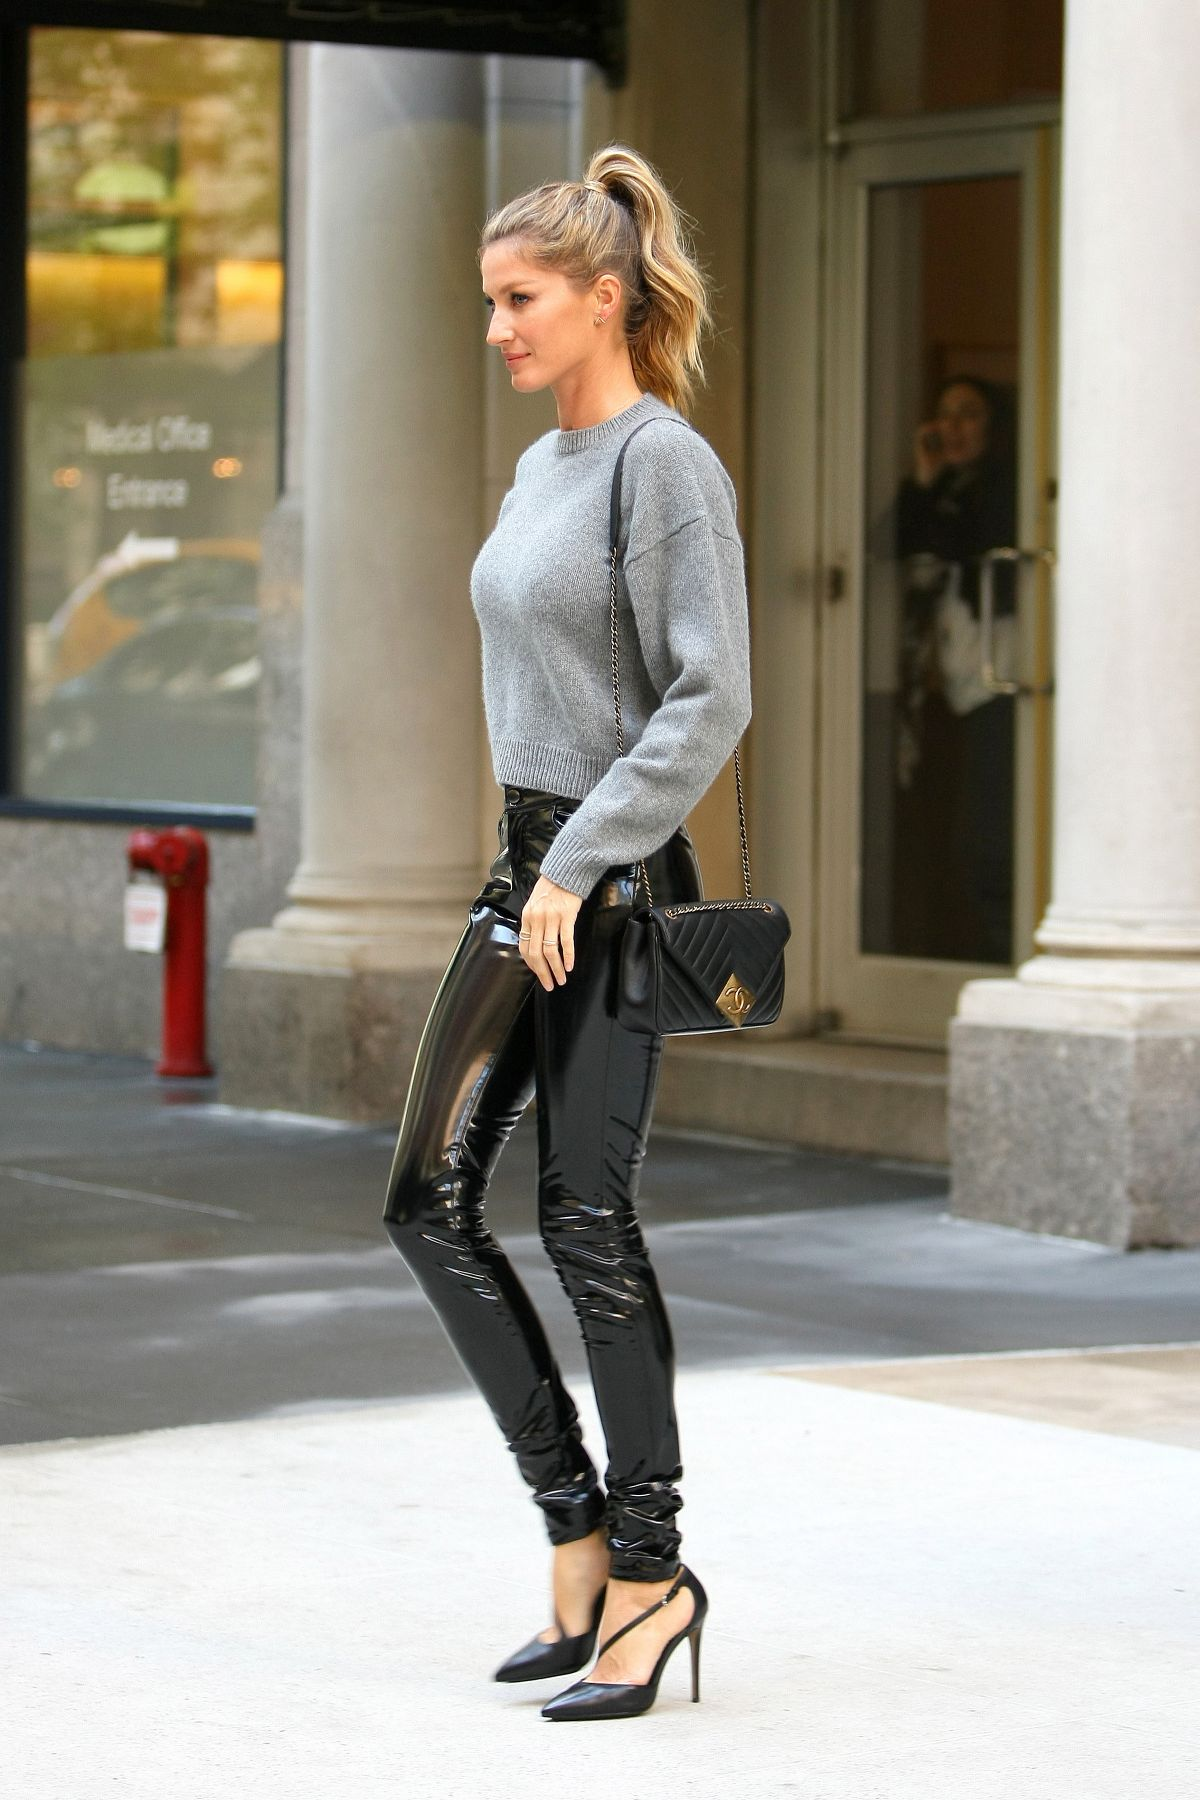 GISELE BUNDCHEN Leaves Her Apartment in New York 04/27 ... Gisele Bundchen